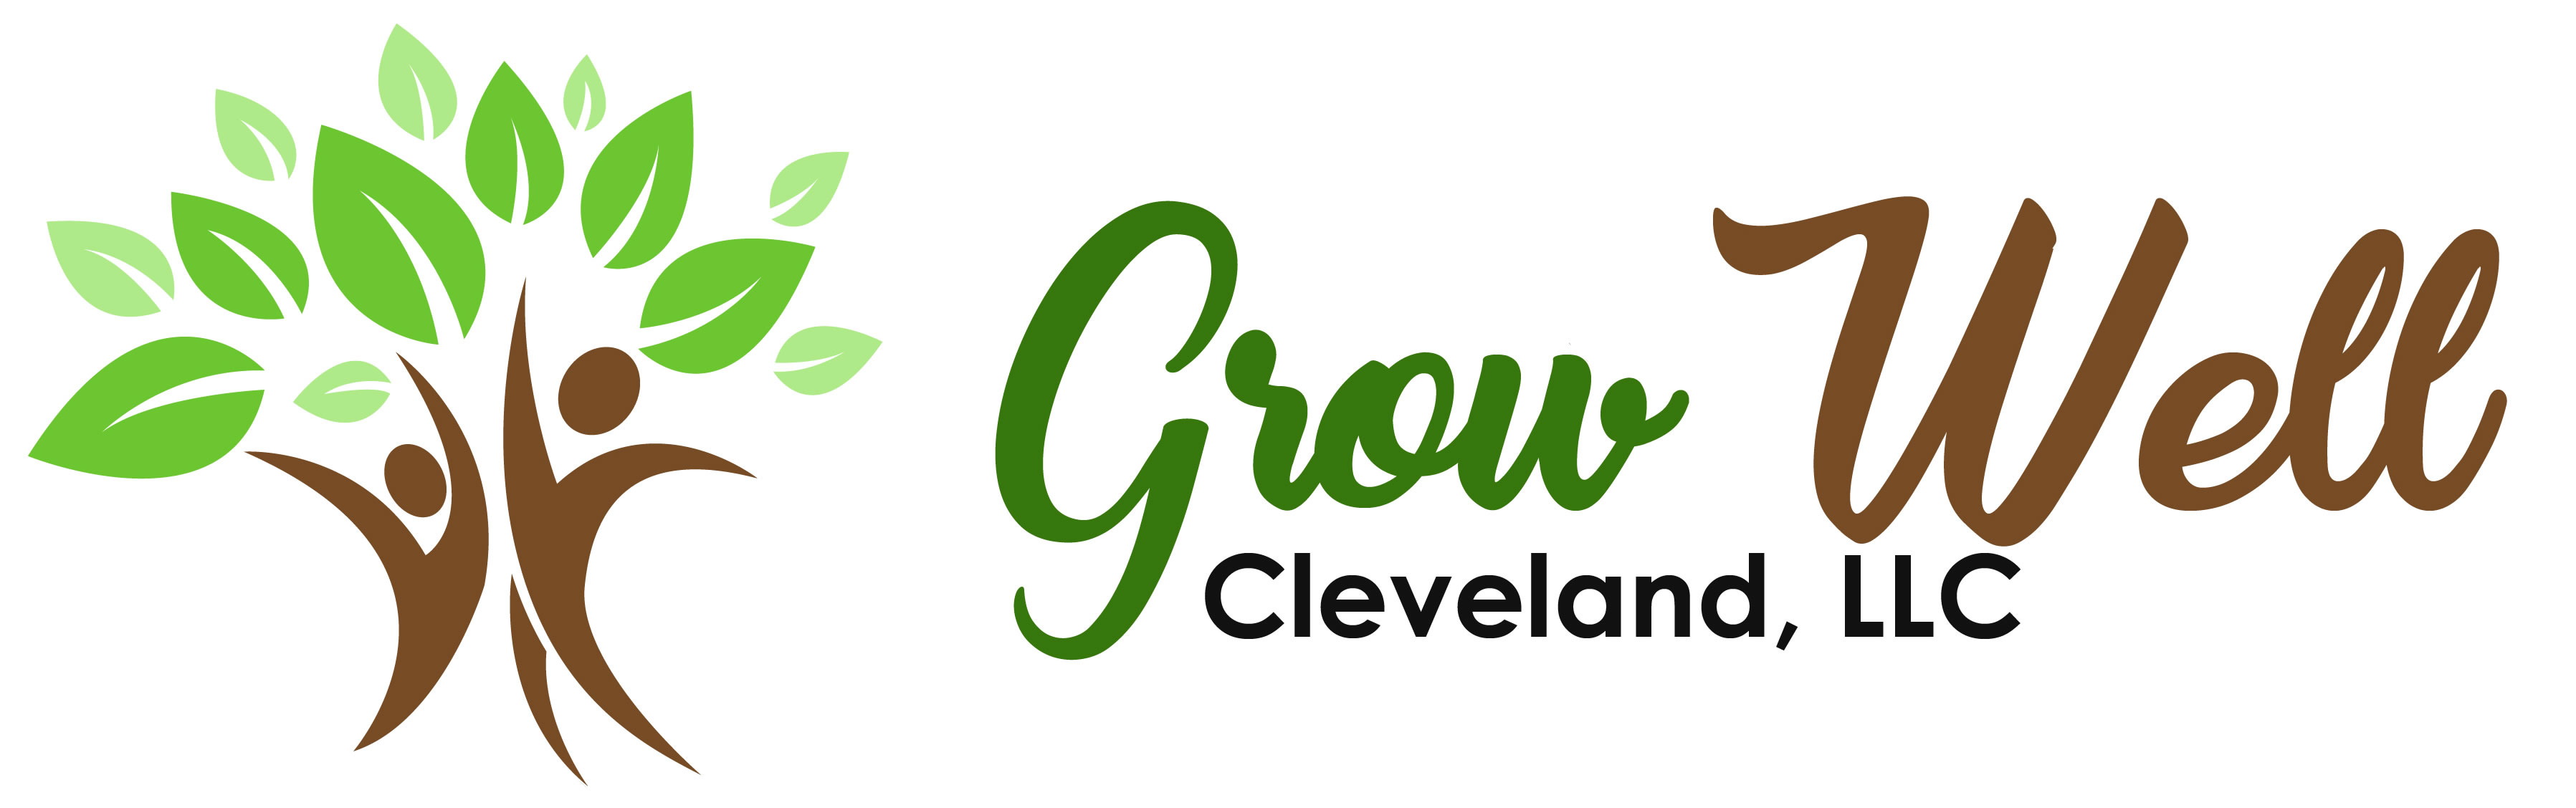 Grow Well Cleveland